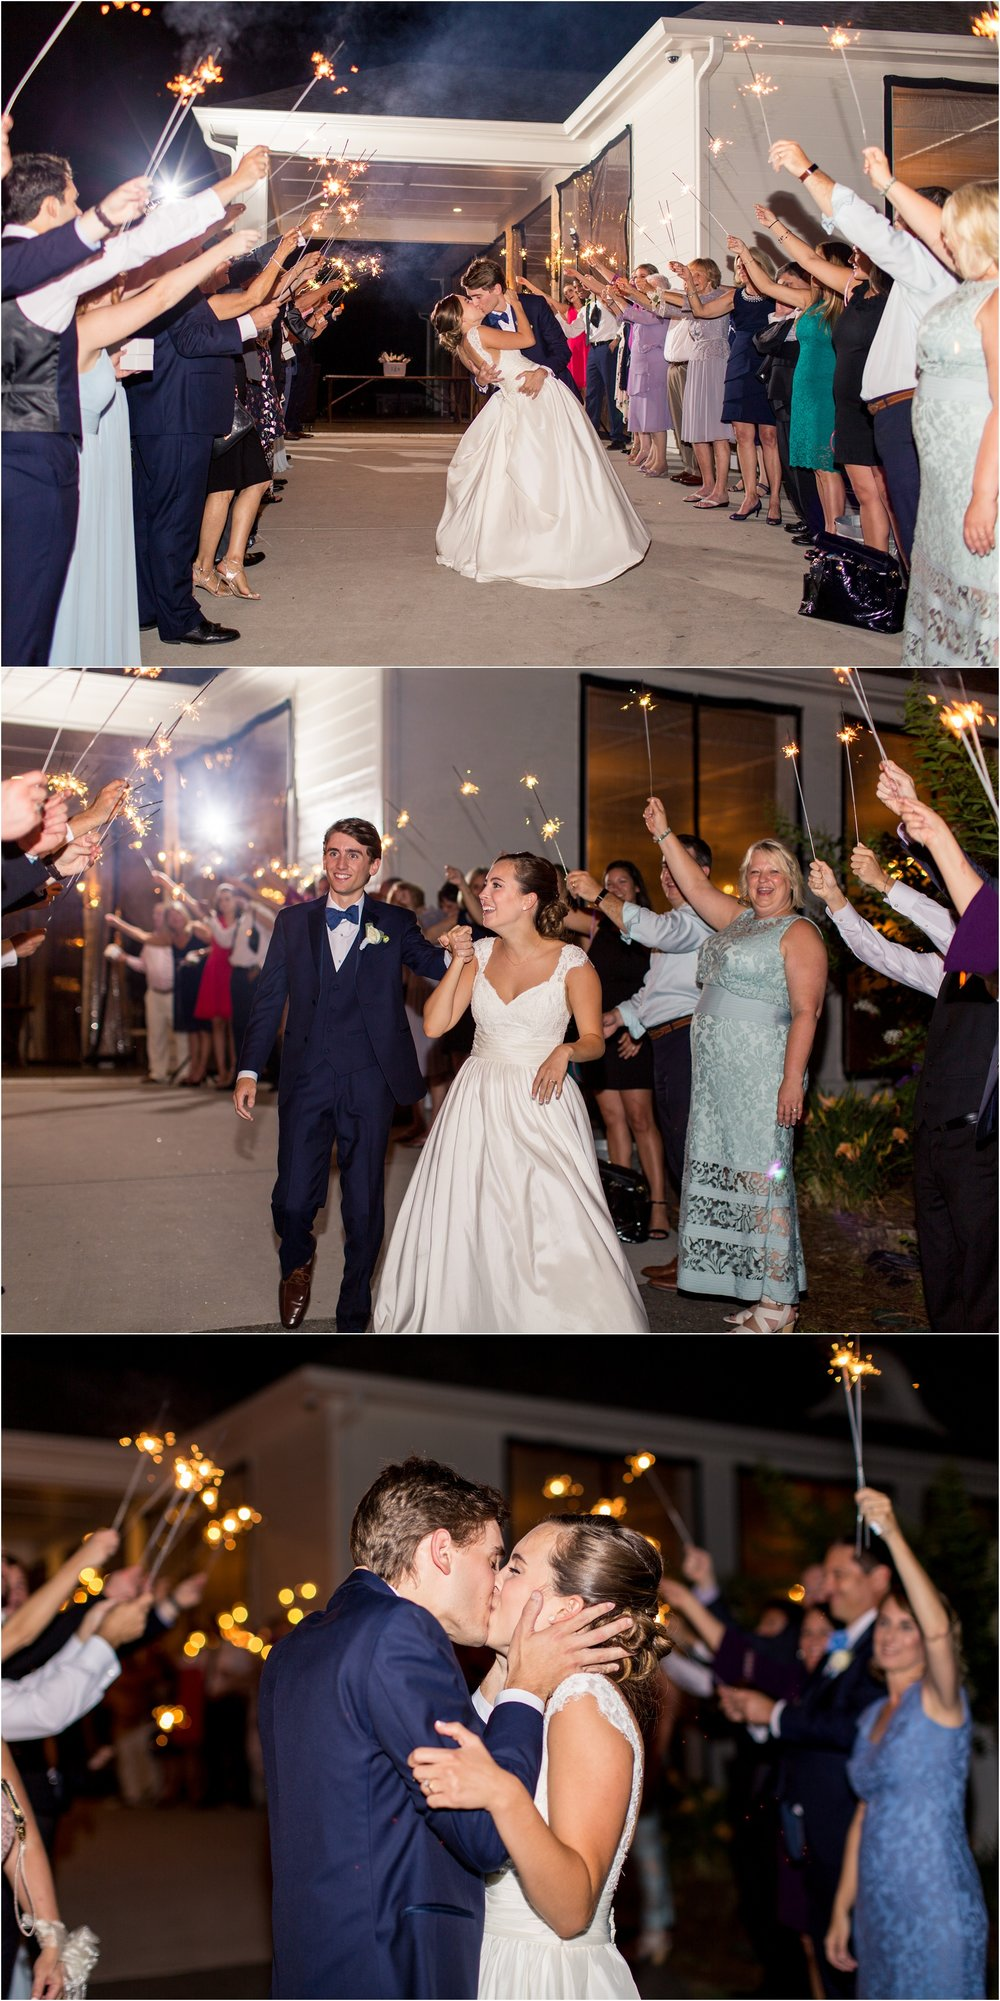 Savannah Eve Photography- Sigl-Adams Wedding- Sneak Peek-99.jpg